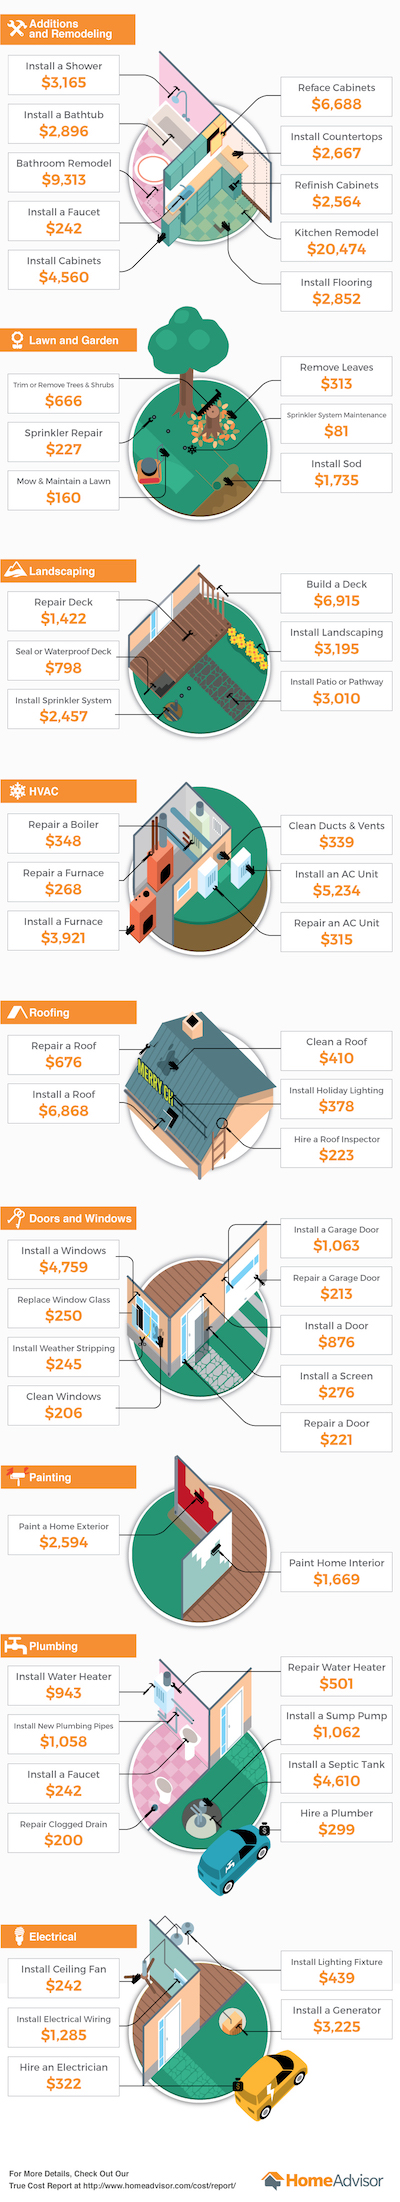 Home improvement cost infographic